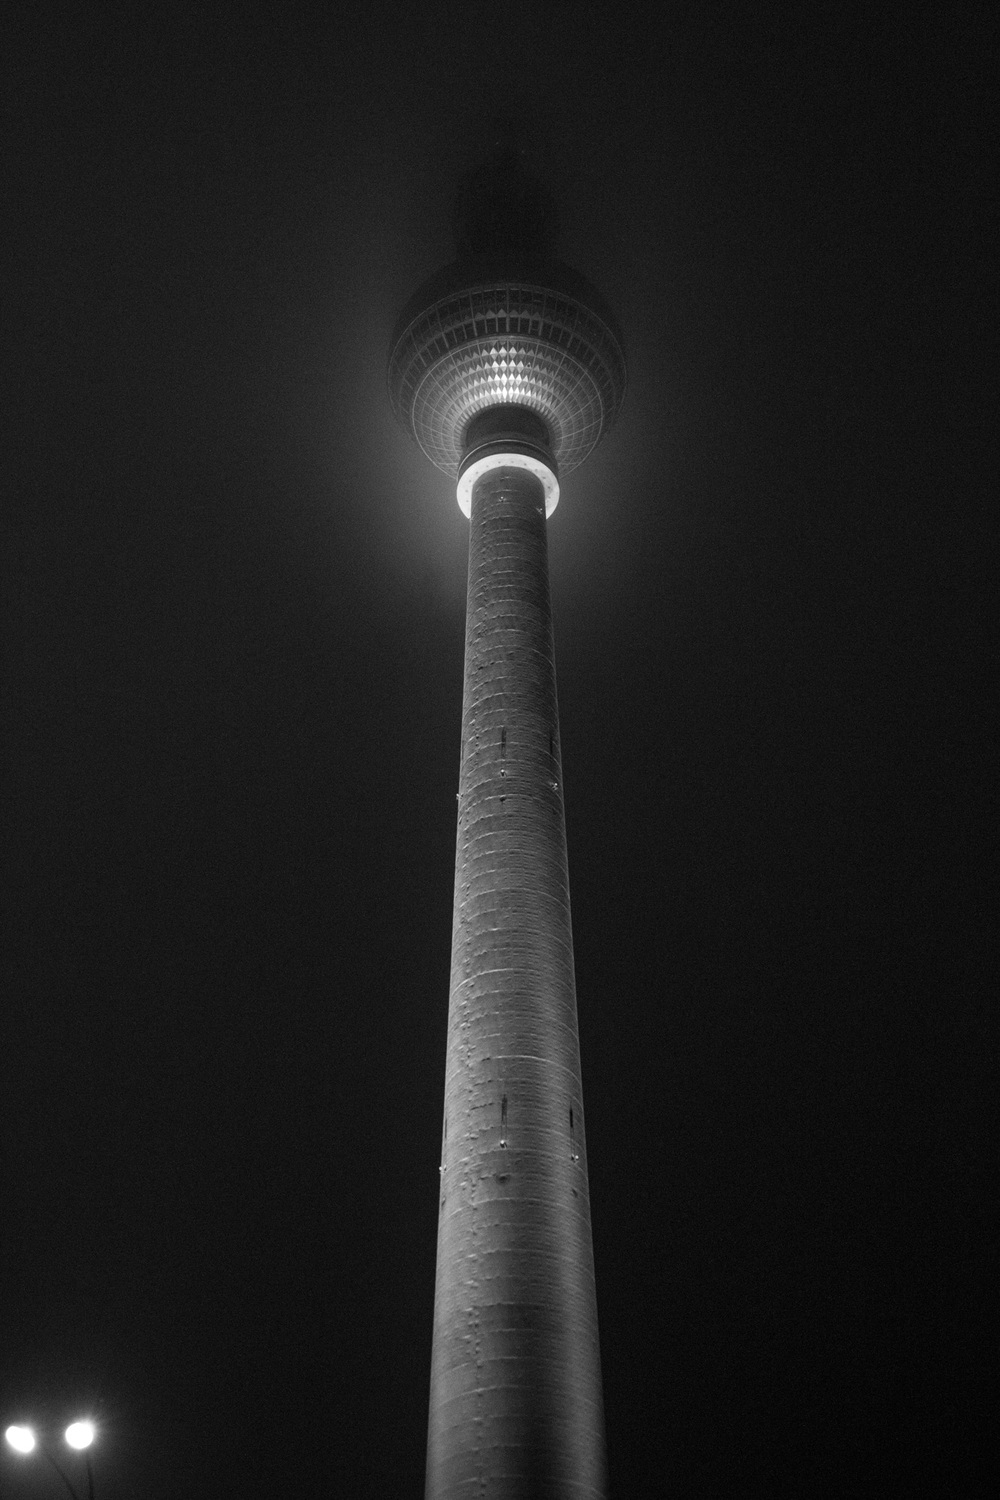 Berliner Fernsehturm  by night, coated in slight fog.